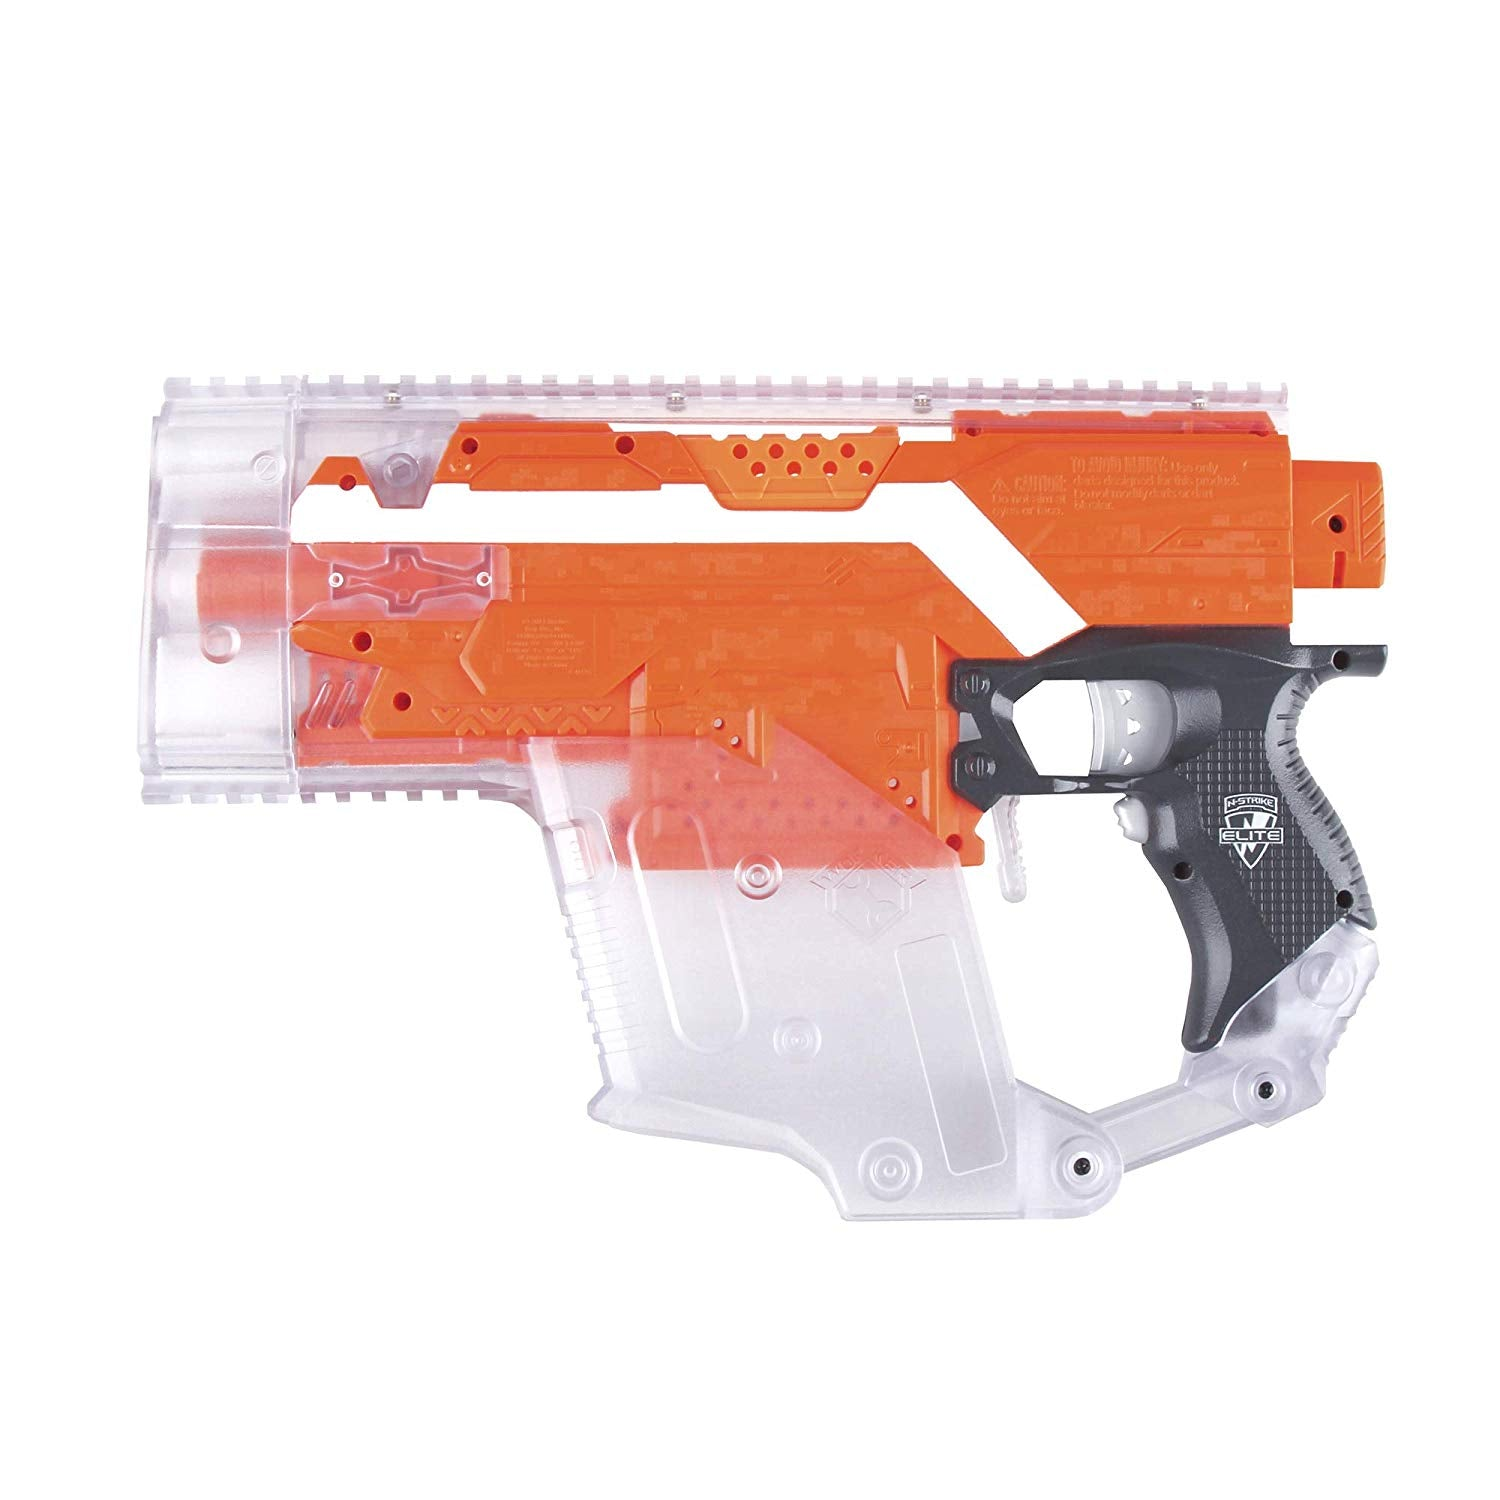 WORKER Top Patch Mod kit for Nerf Stryfe Attachment